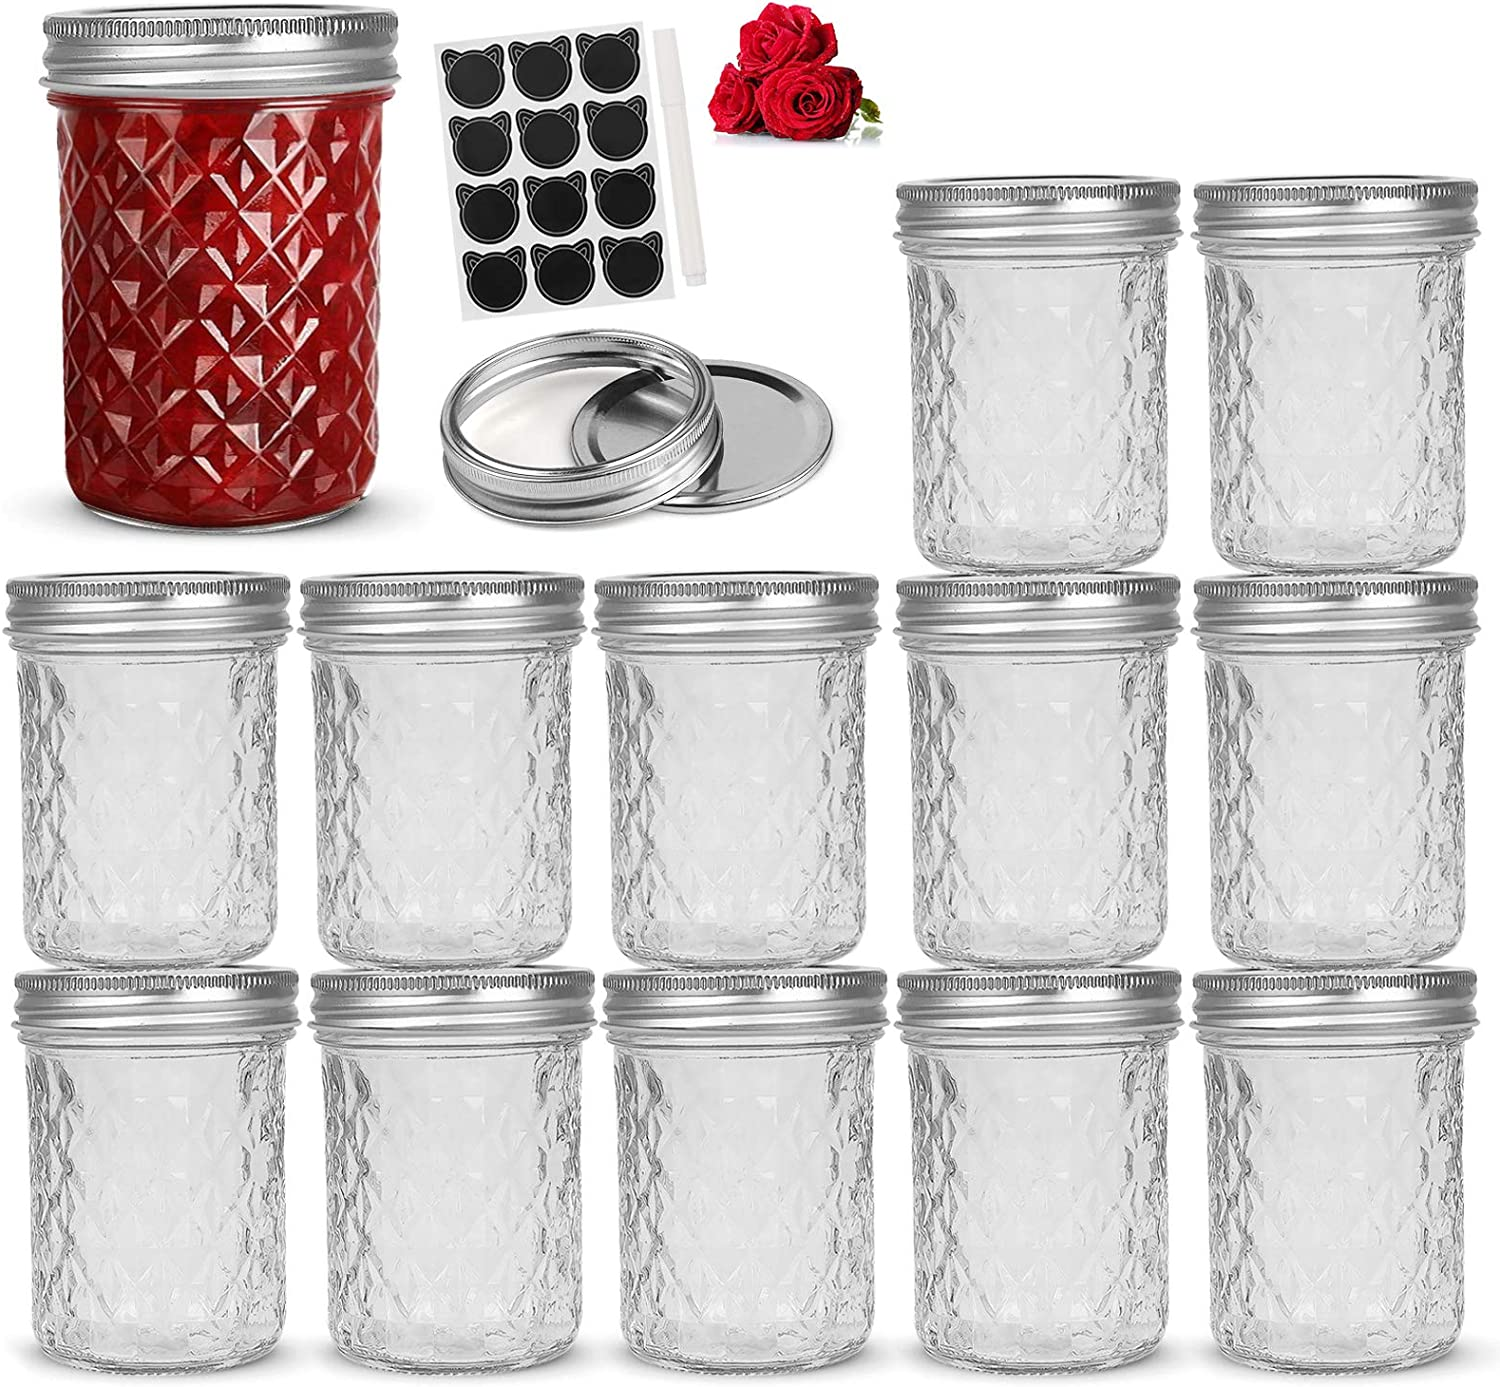 LovoIn 16oz Wide Mouth Mason Jars 12 PACK with Lids and Bands, Glass Canning Jars Ideal for Food Storage, Jam, Body Butters, Jelly, Wedding Favors, Baby Foods